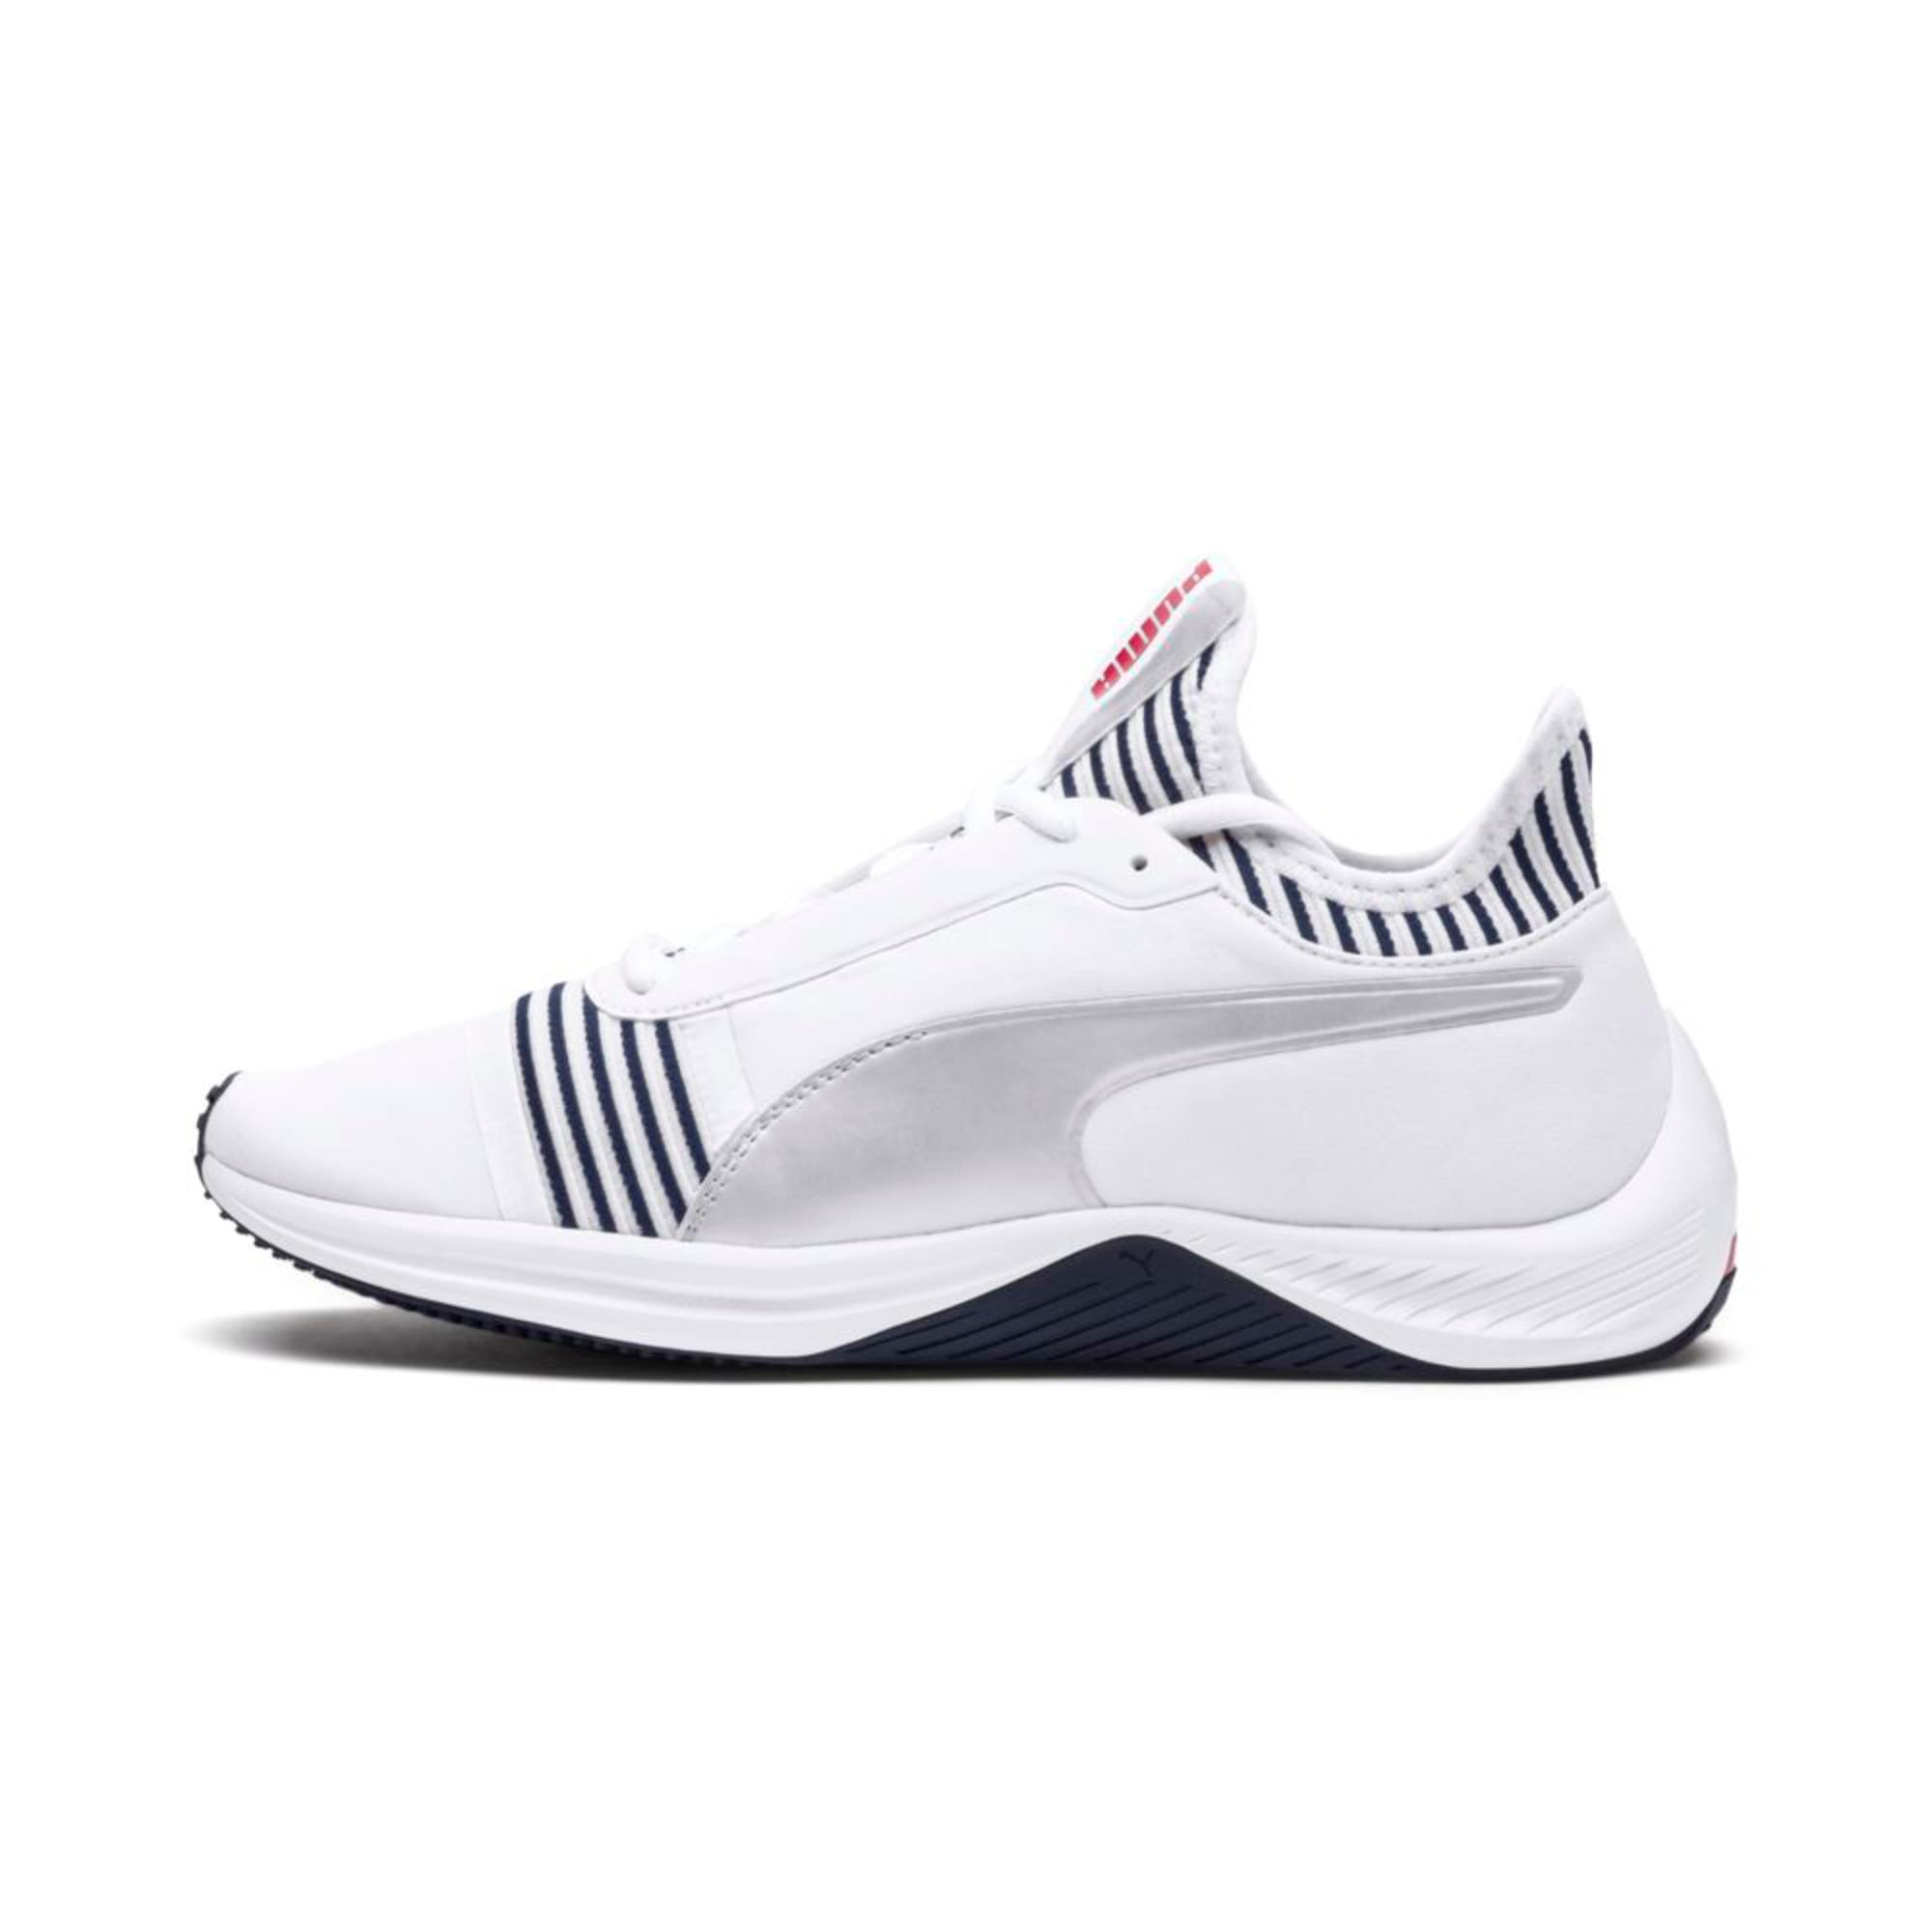 Thumbnail 1 of Amp XT Women's Trainers, Puma White-Peacoat, medium-IND